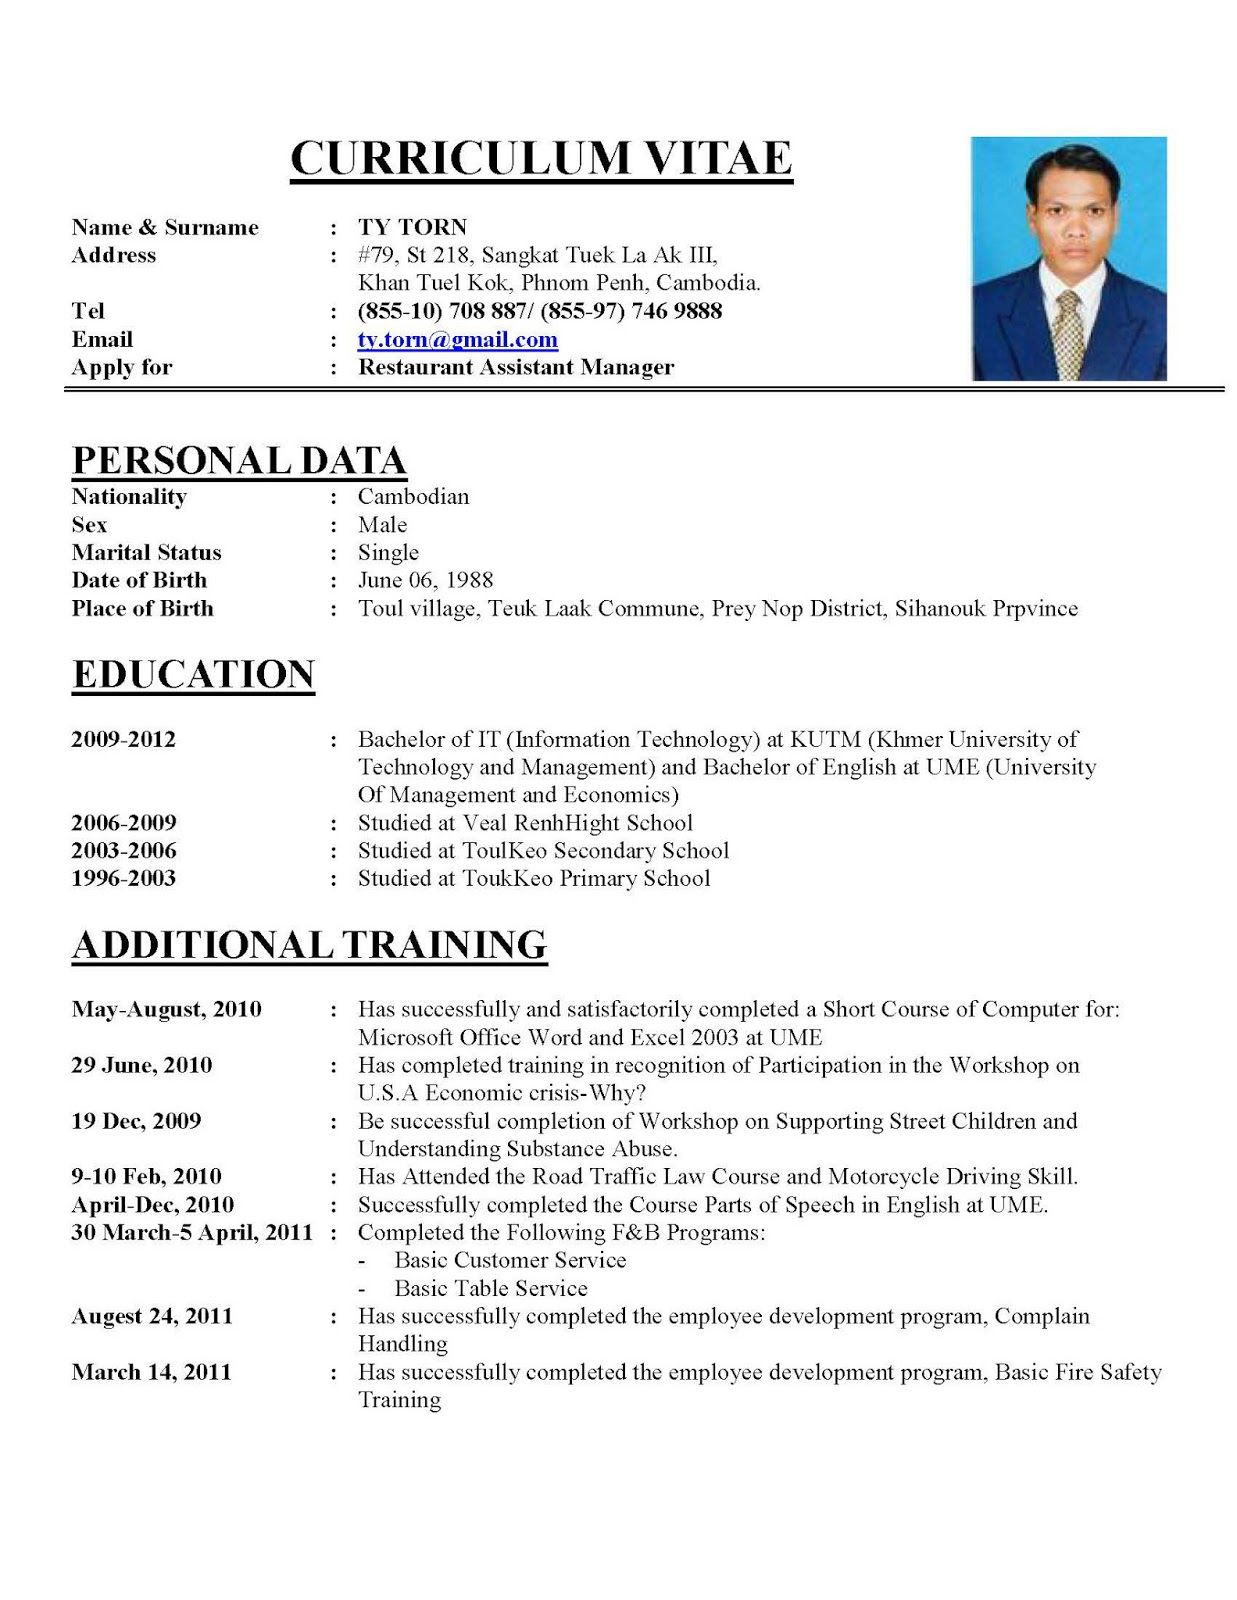 Example Of A Good Resume Format Writing A Perfect Curriculum Vitae Sample Cv Hznrkdk